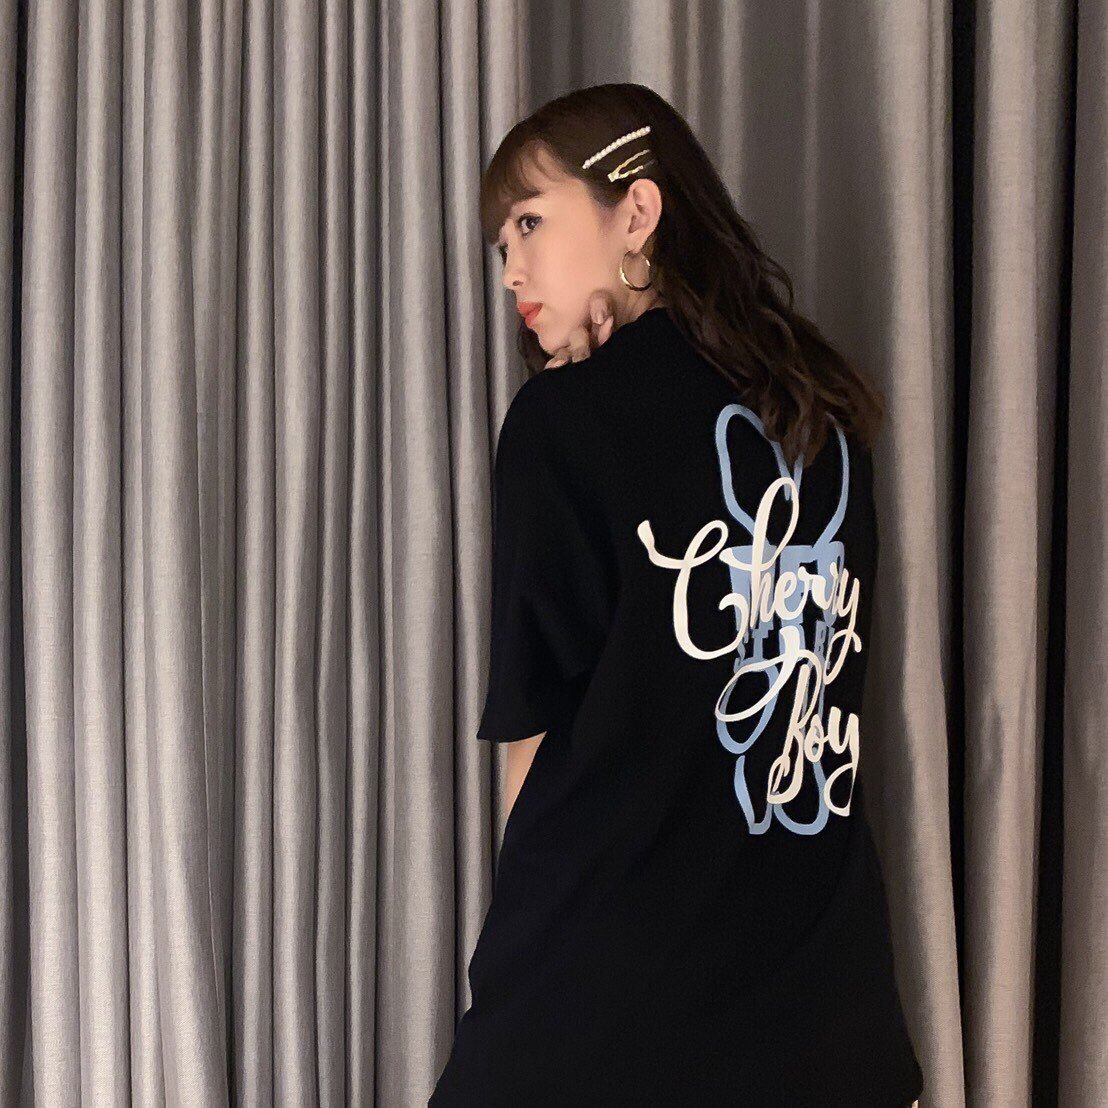 mfc-store-nicoron-2nd-collaboration-tee-release-20190720